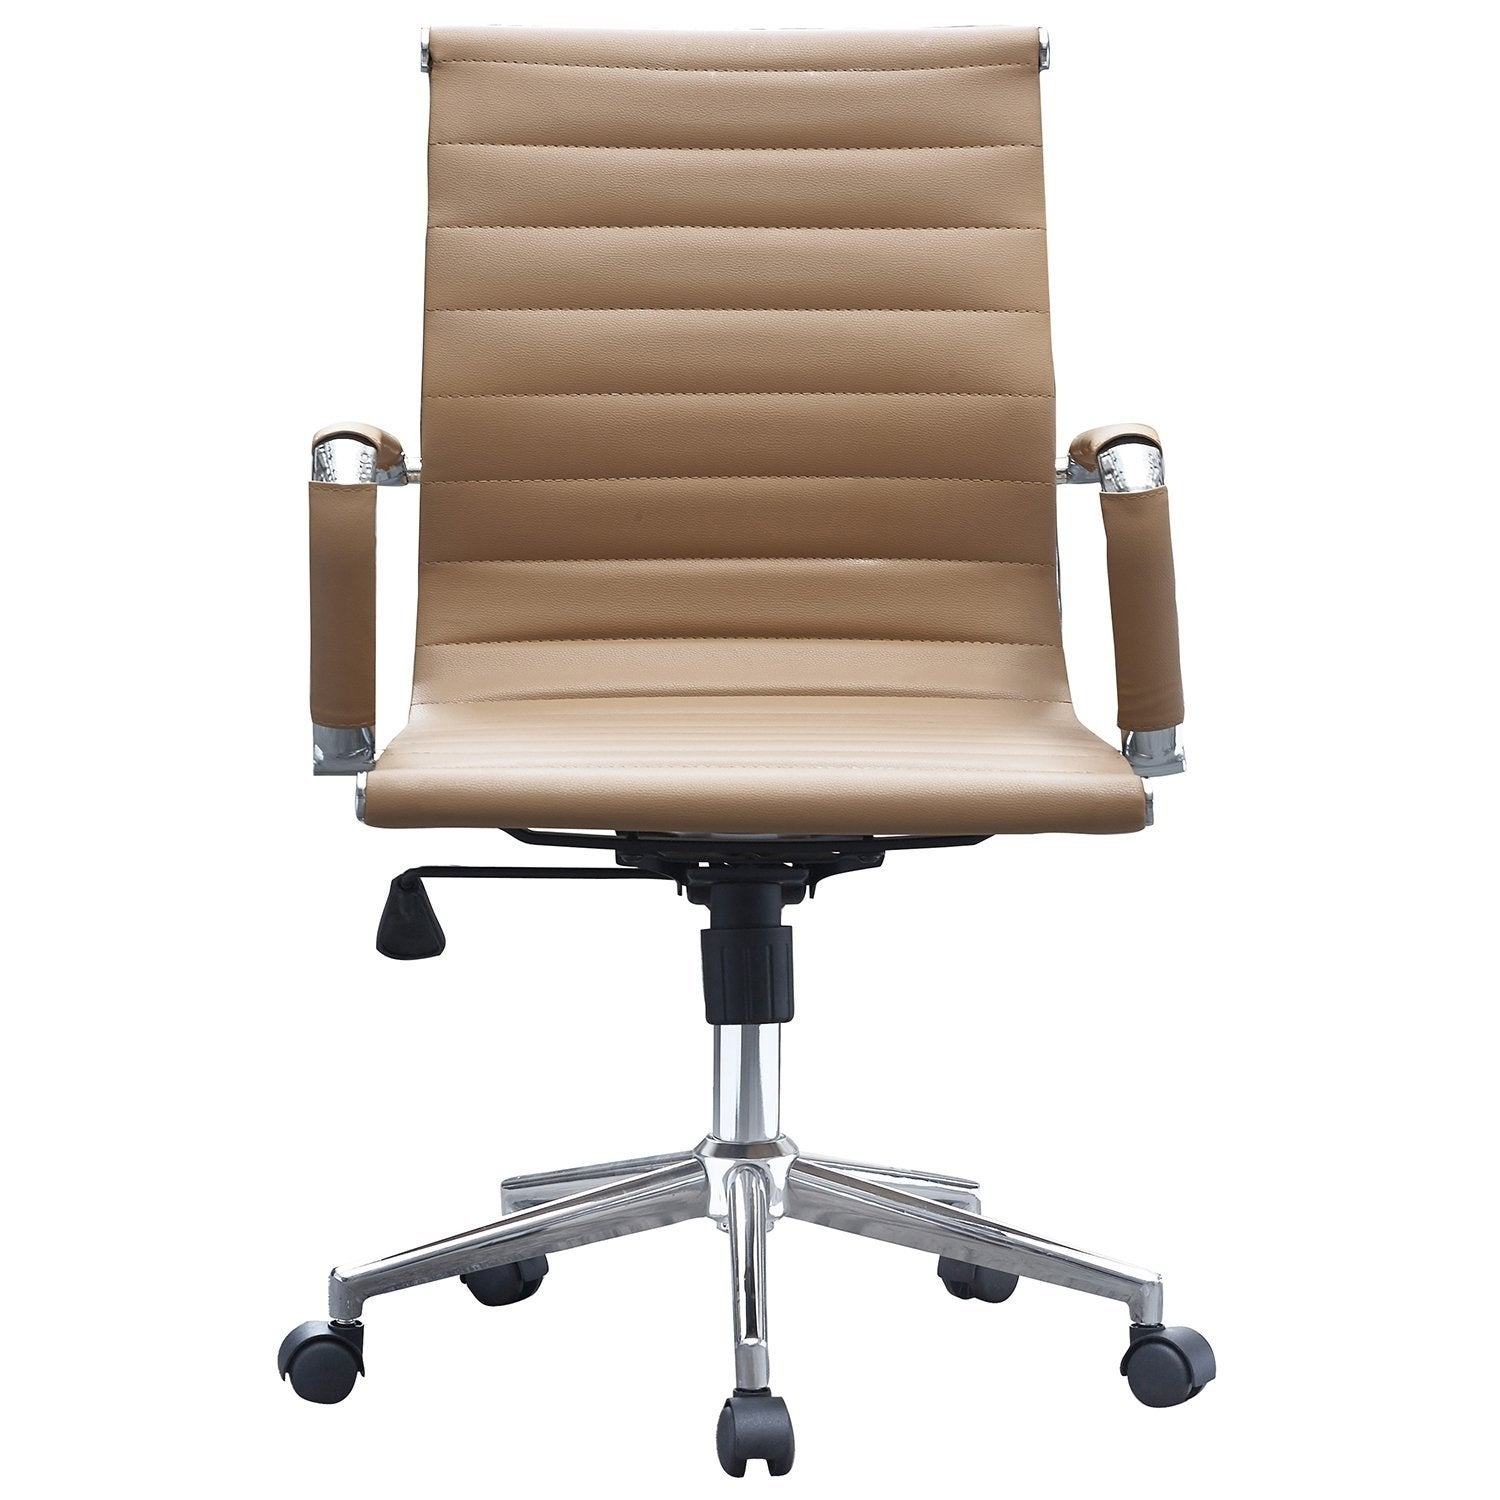 Eames ribbed chair tan office Daksh Shop 2xhome Office Chair Mid Back Tan Ergonomic Adjustable Height Swivel With Padded Arms Wheels Work Executive Task Free Shipping Today Overstockcom Homeplex Furniture Shop 2xhome Office Chair Mid Back Tan Ergonomic Adjustable Height